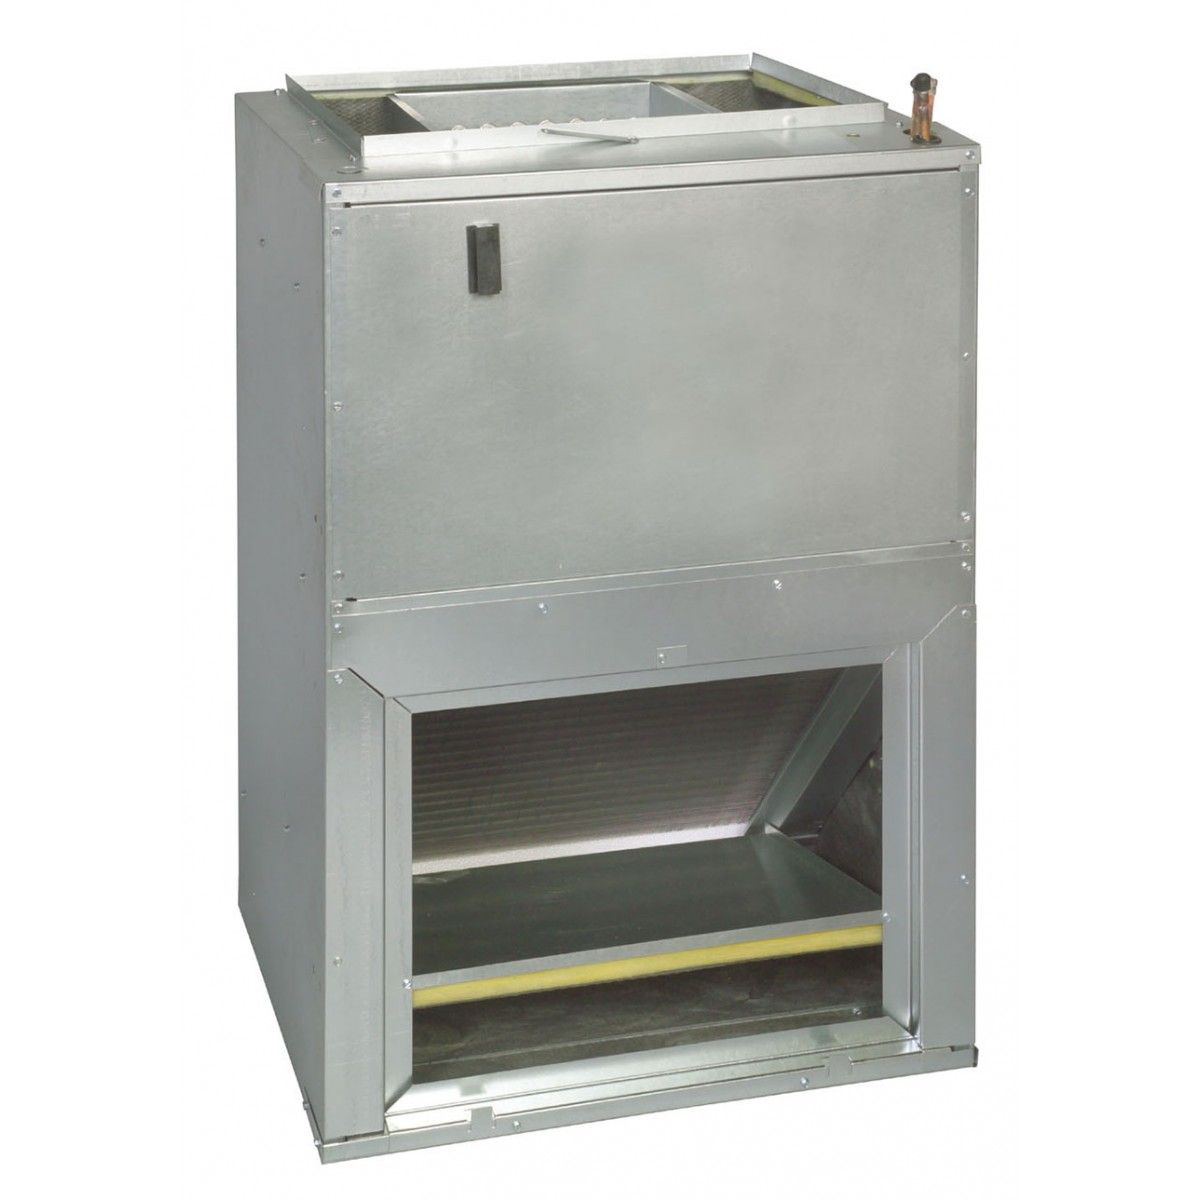 2 5 Ton Goodman Awuf Wall Mount Air Handler 2 5 Ton 3